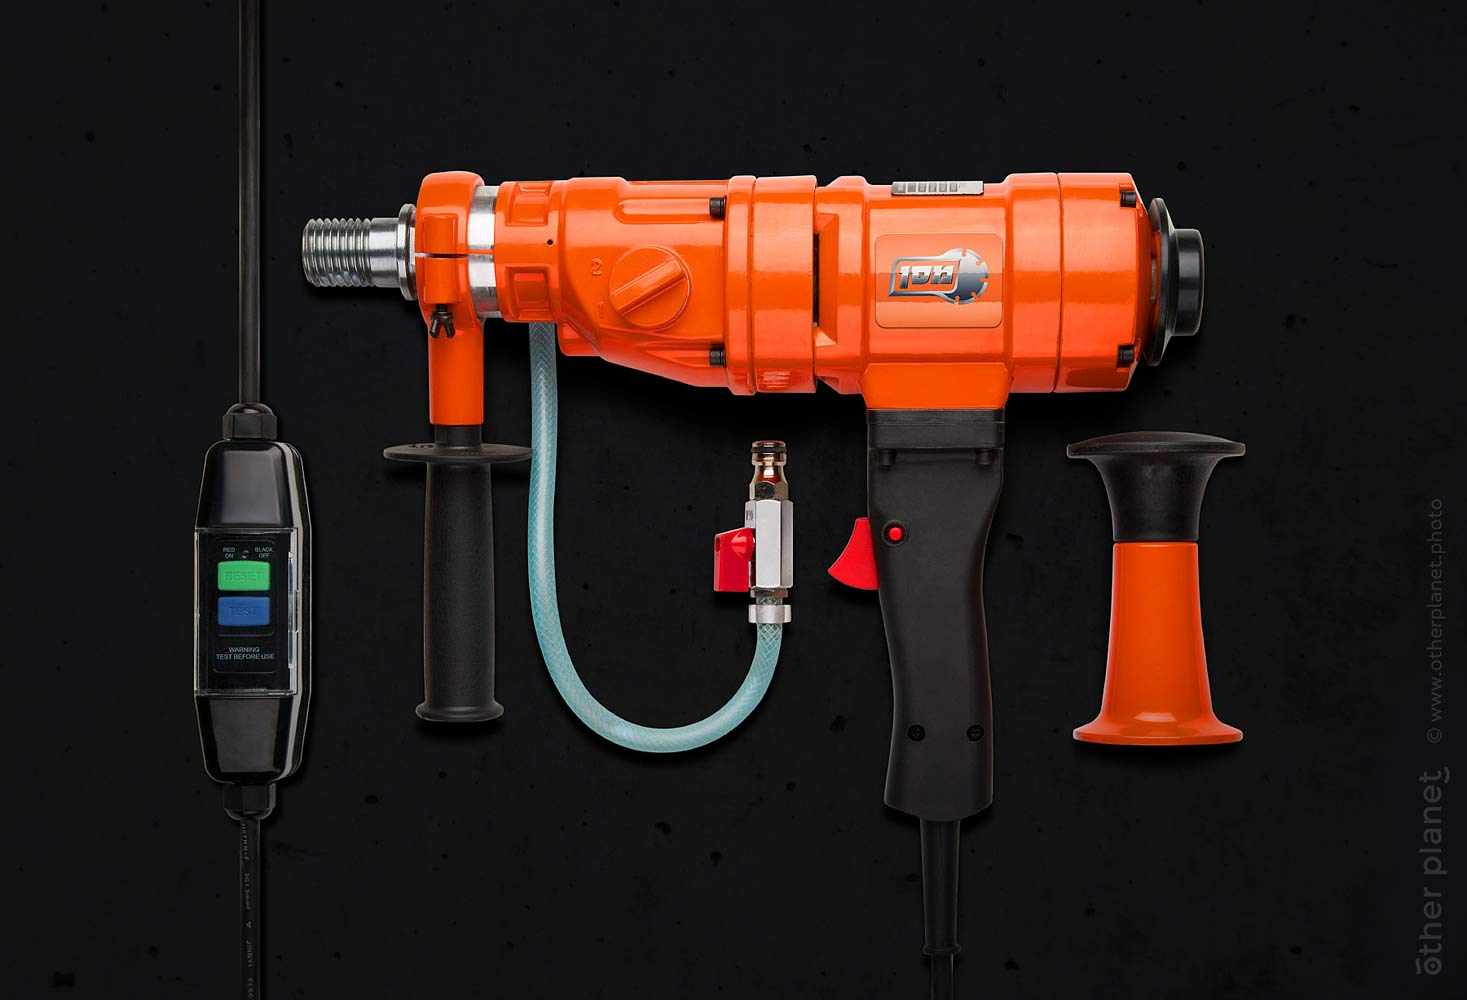 Hand drill for concrete drilling on black background